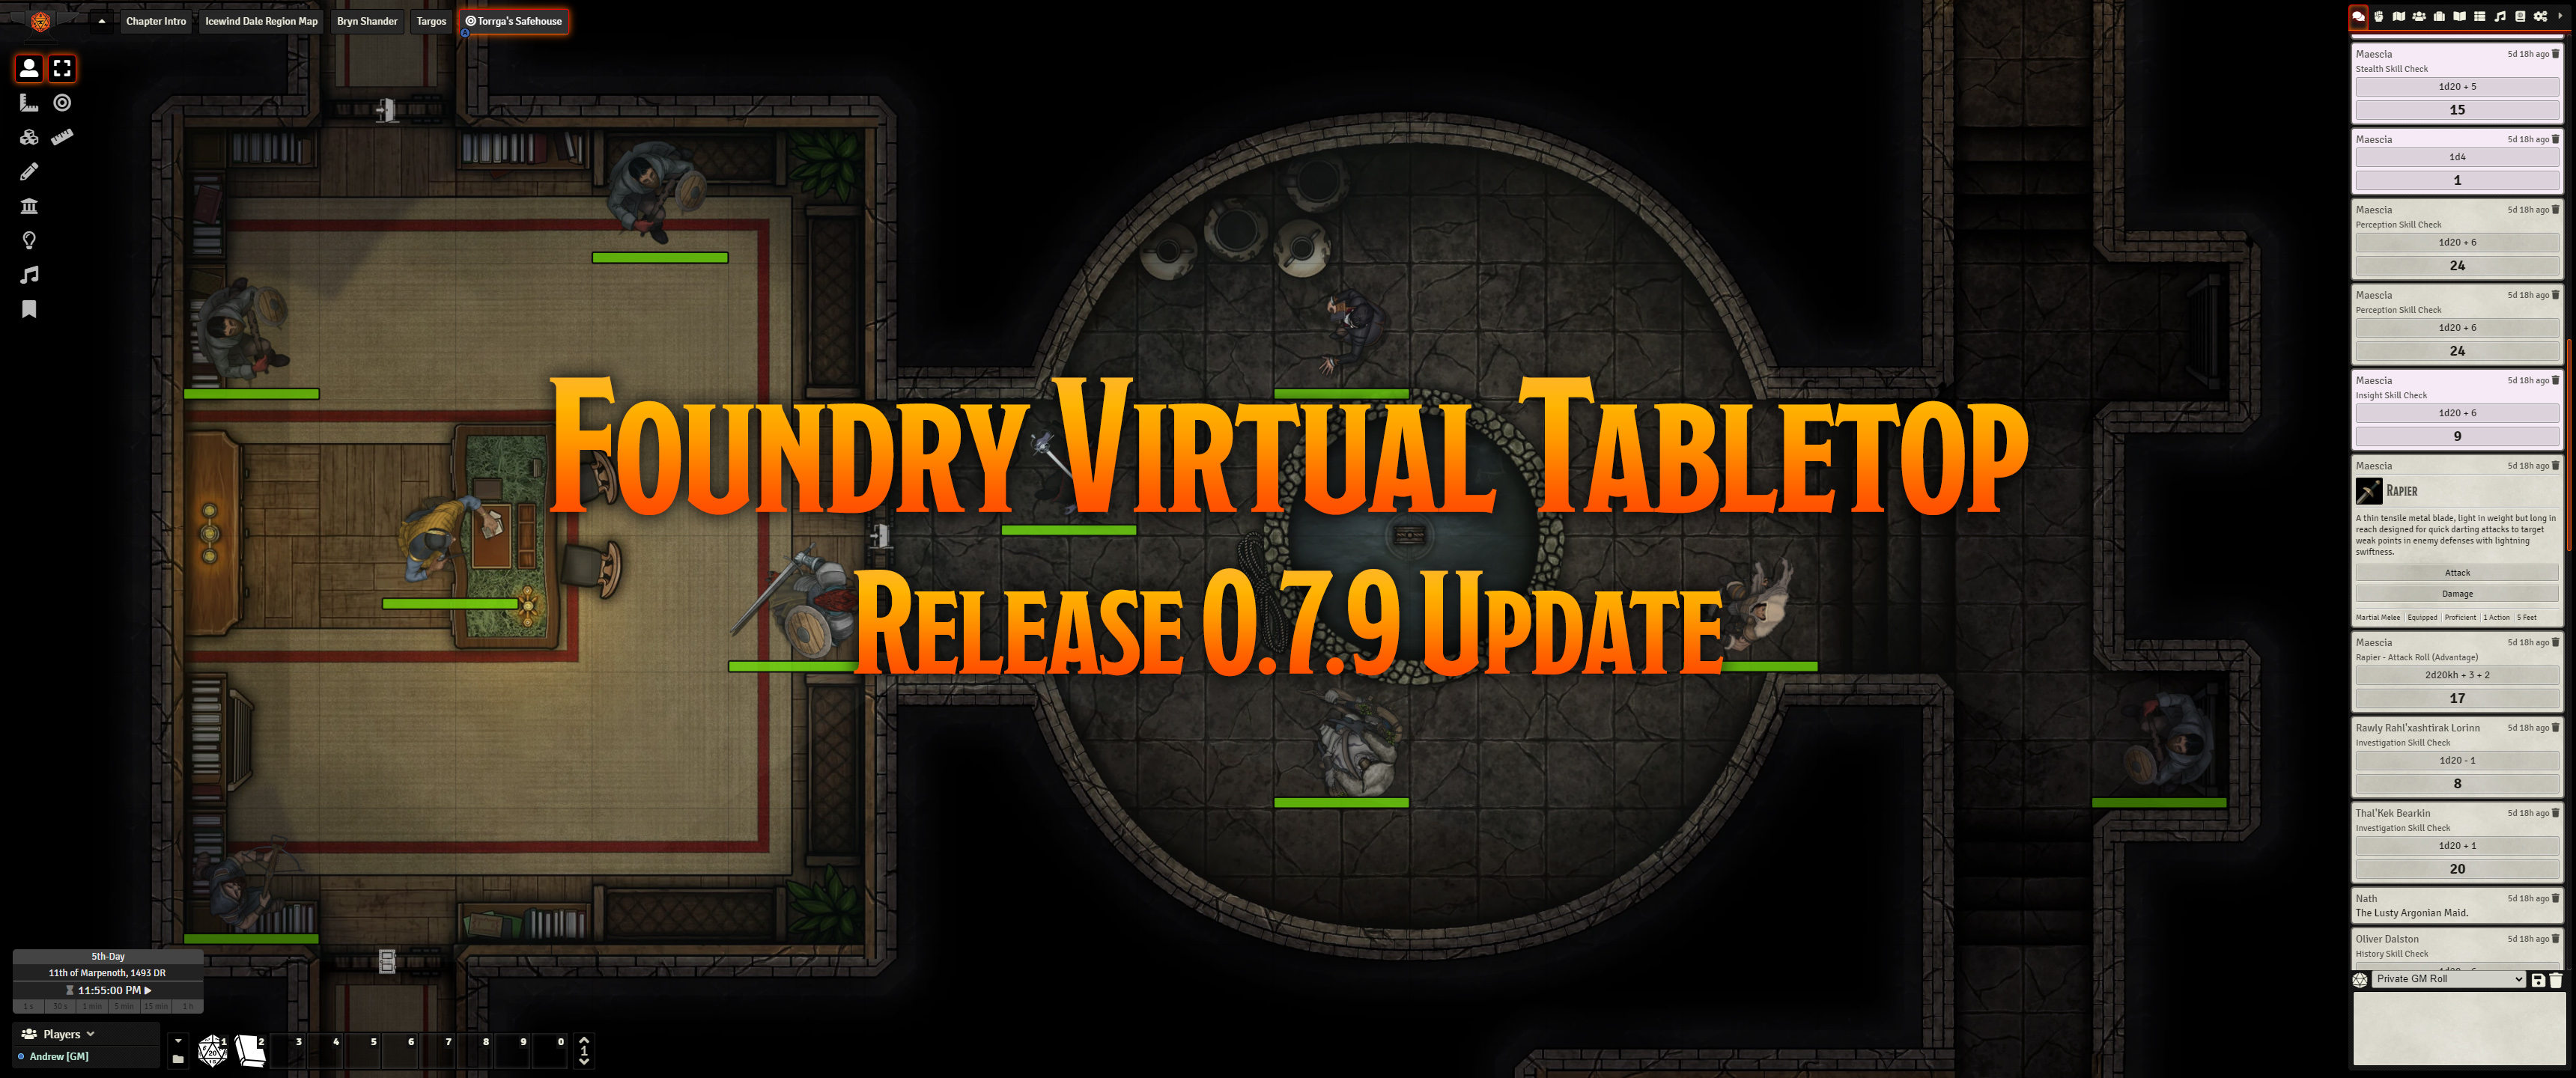 Release Notes for the Foundry Virtual Tabletop 0.7.9 update version